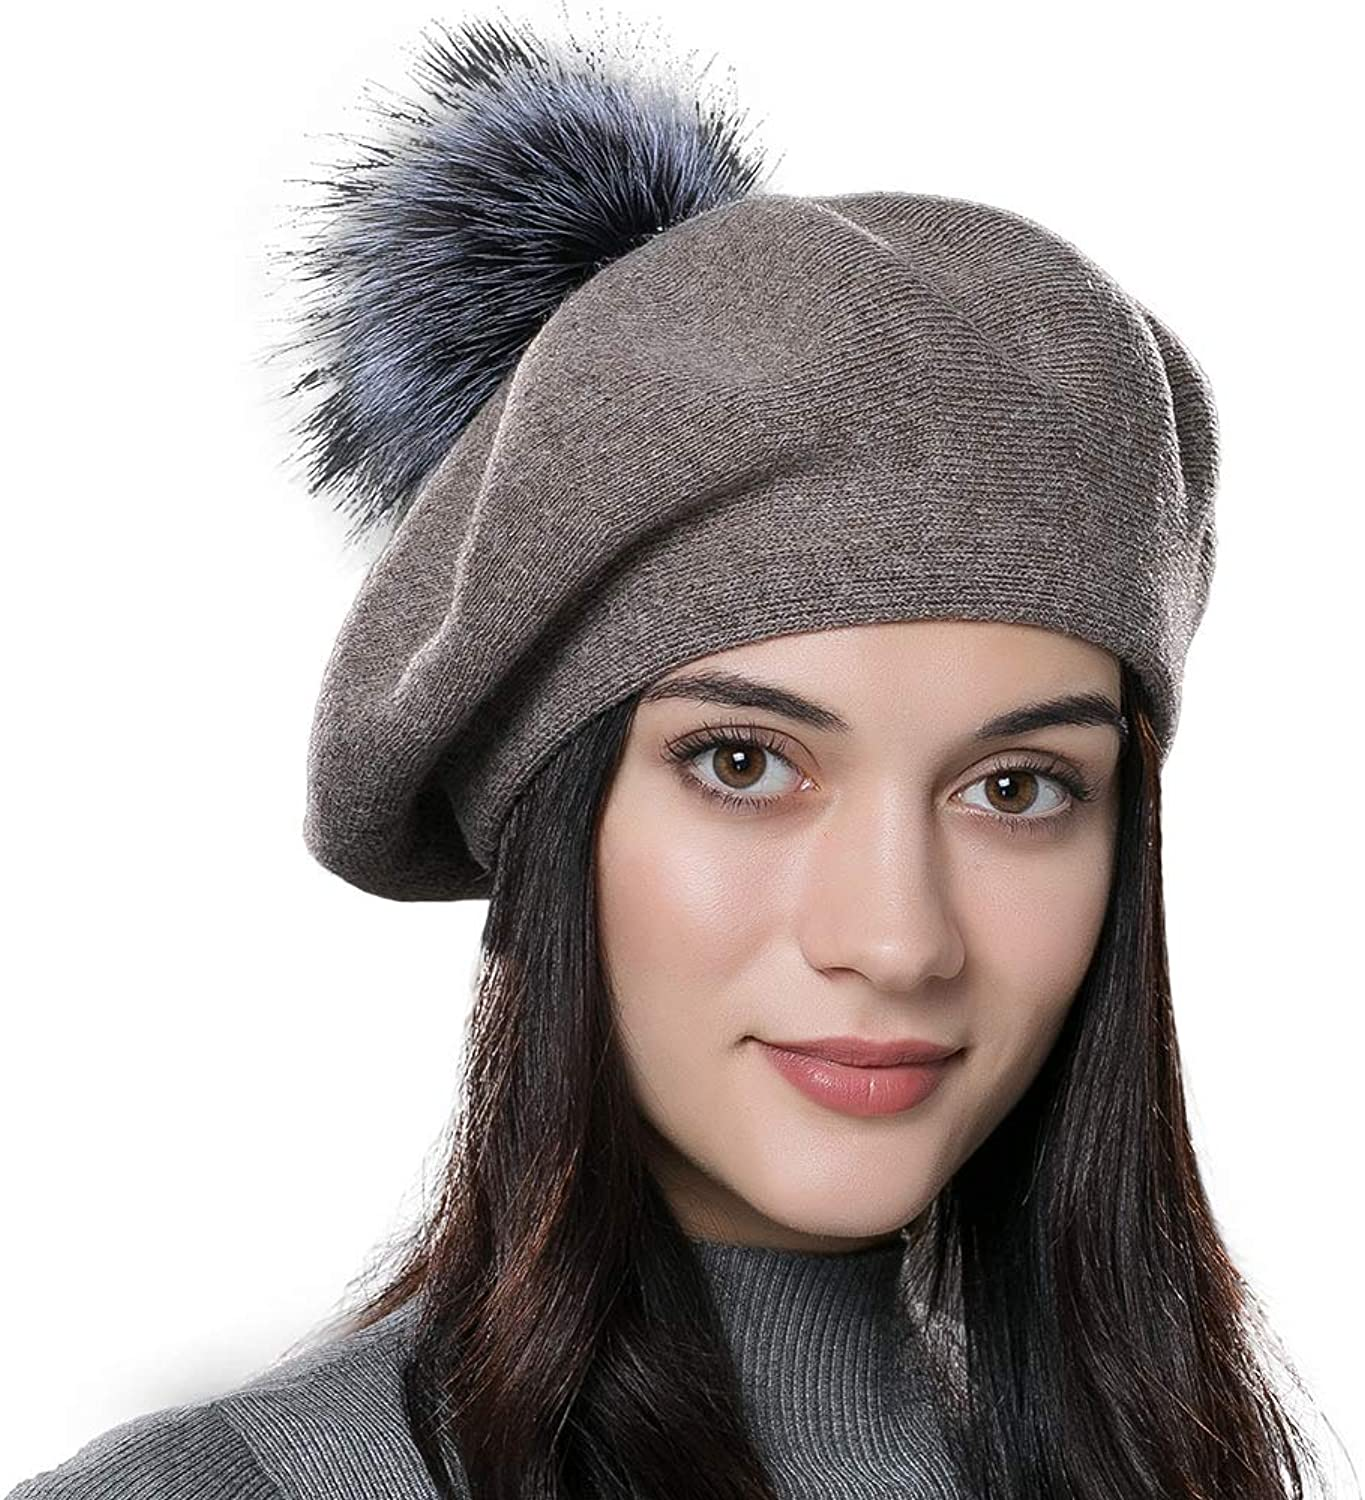 ENJOYFUR Women Winter French Beret Hats Real Fur Pom Pom Wool Warm Berets Soft Lightweight Casual Hat